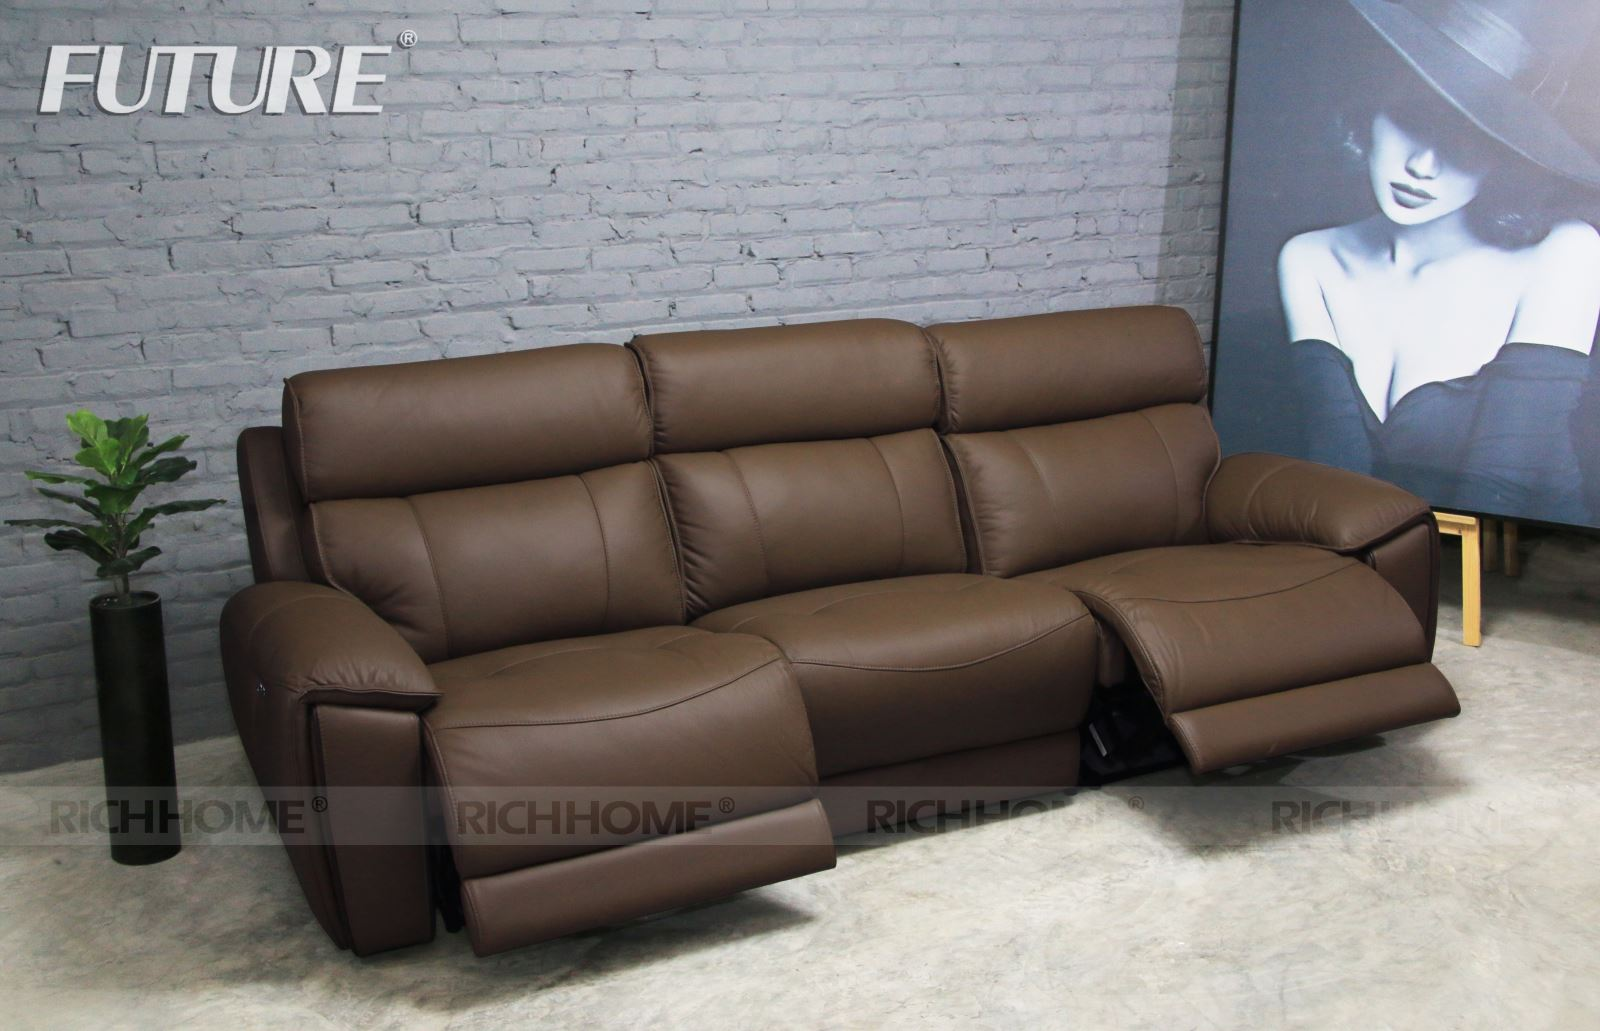 SOFA BĂNG DA BÒ - FUTURE MODEL 9919 (1+2+3)